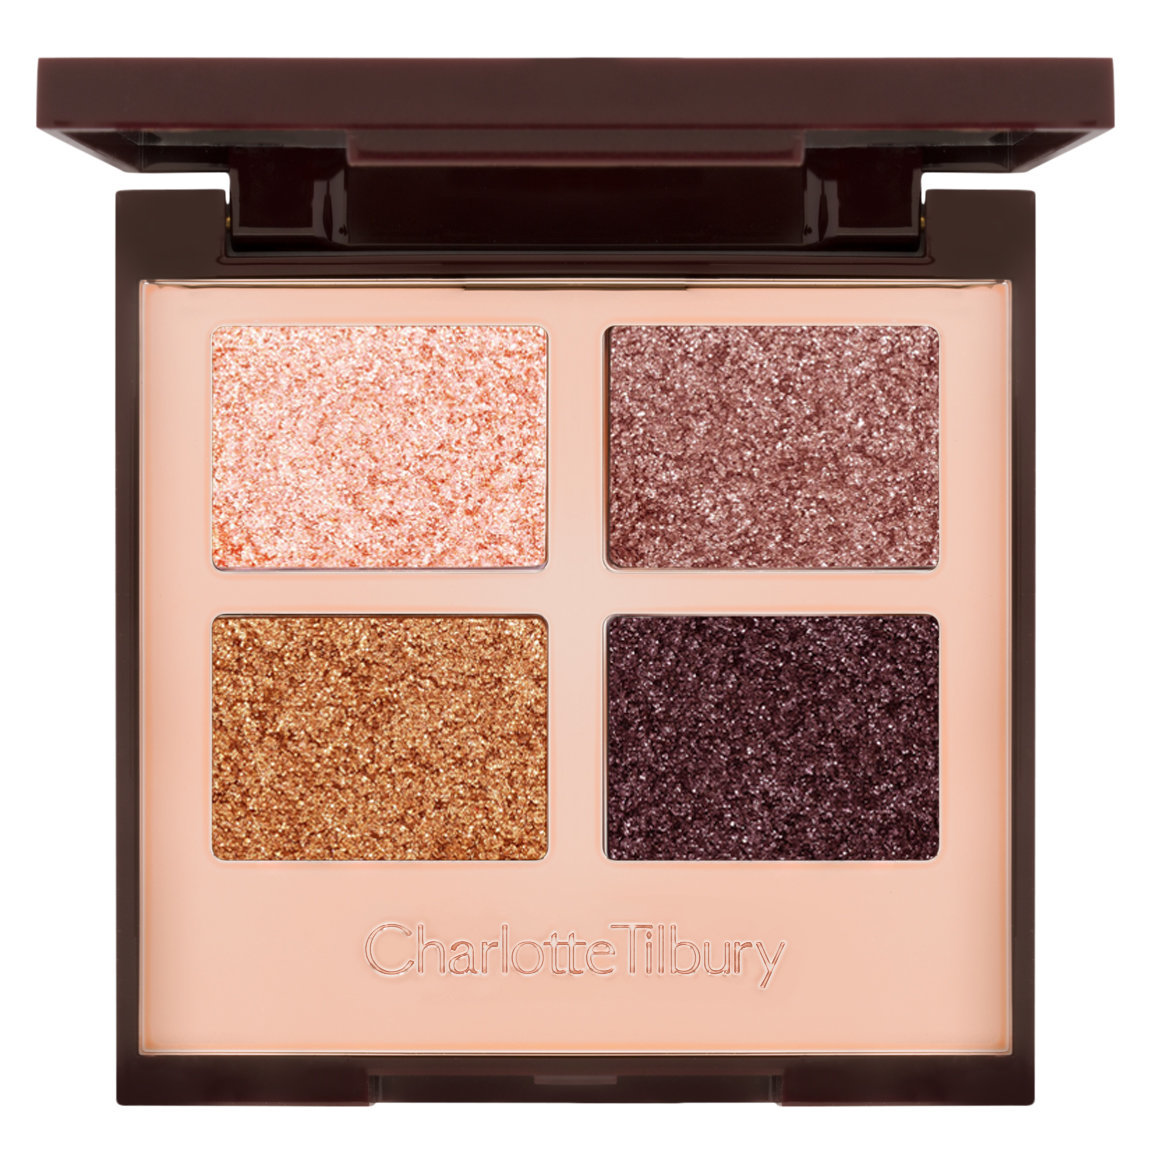 Charlotte Tilbury Luxury Palette of Pops - Celestial Eyes product swatch.